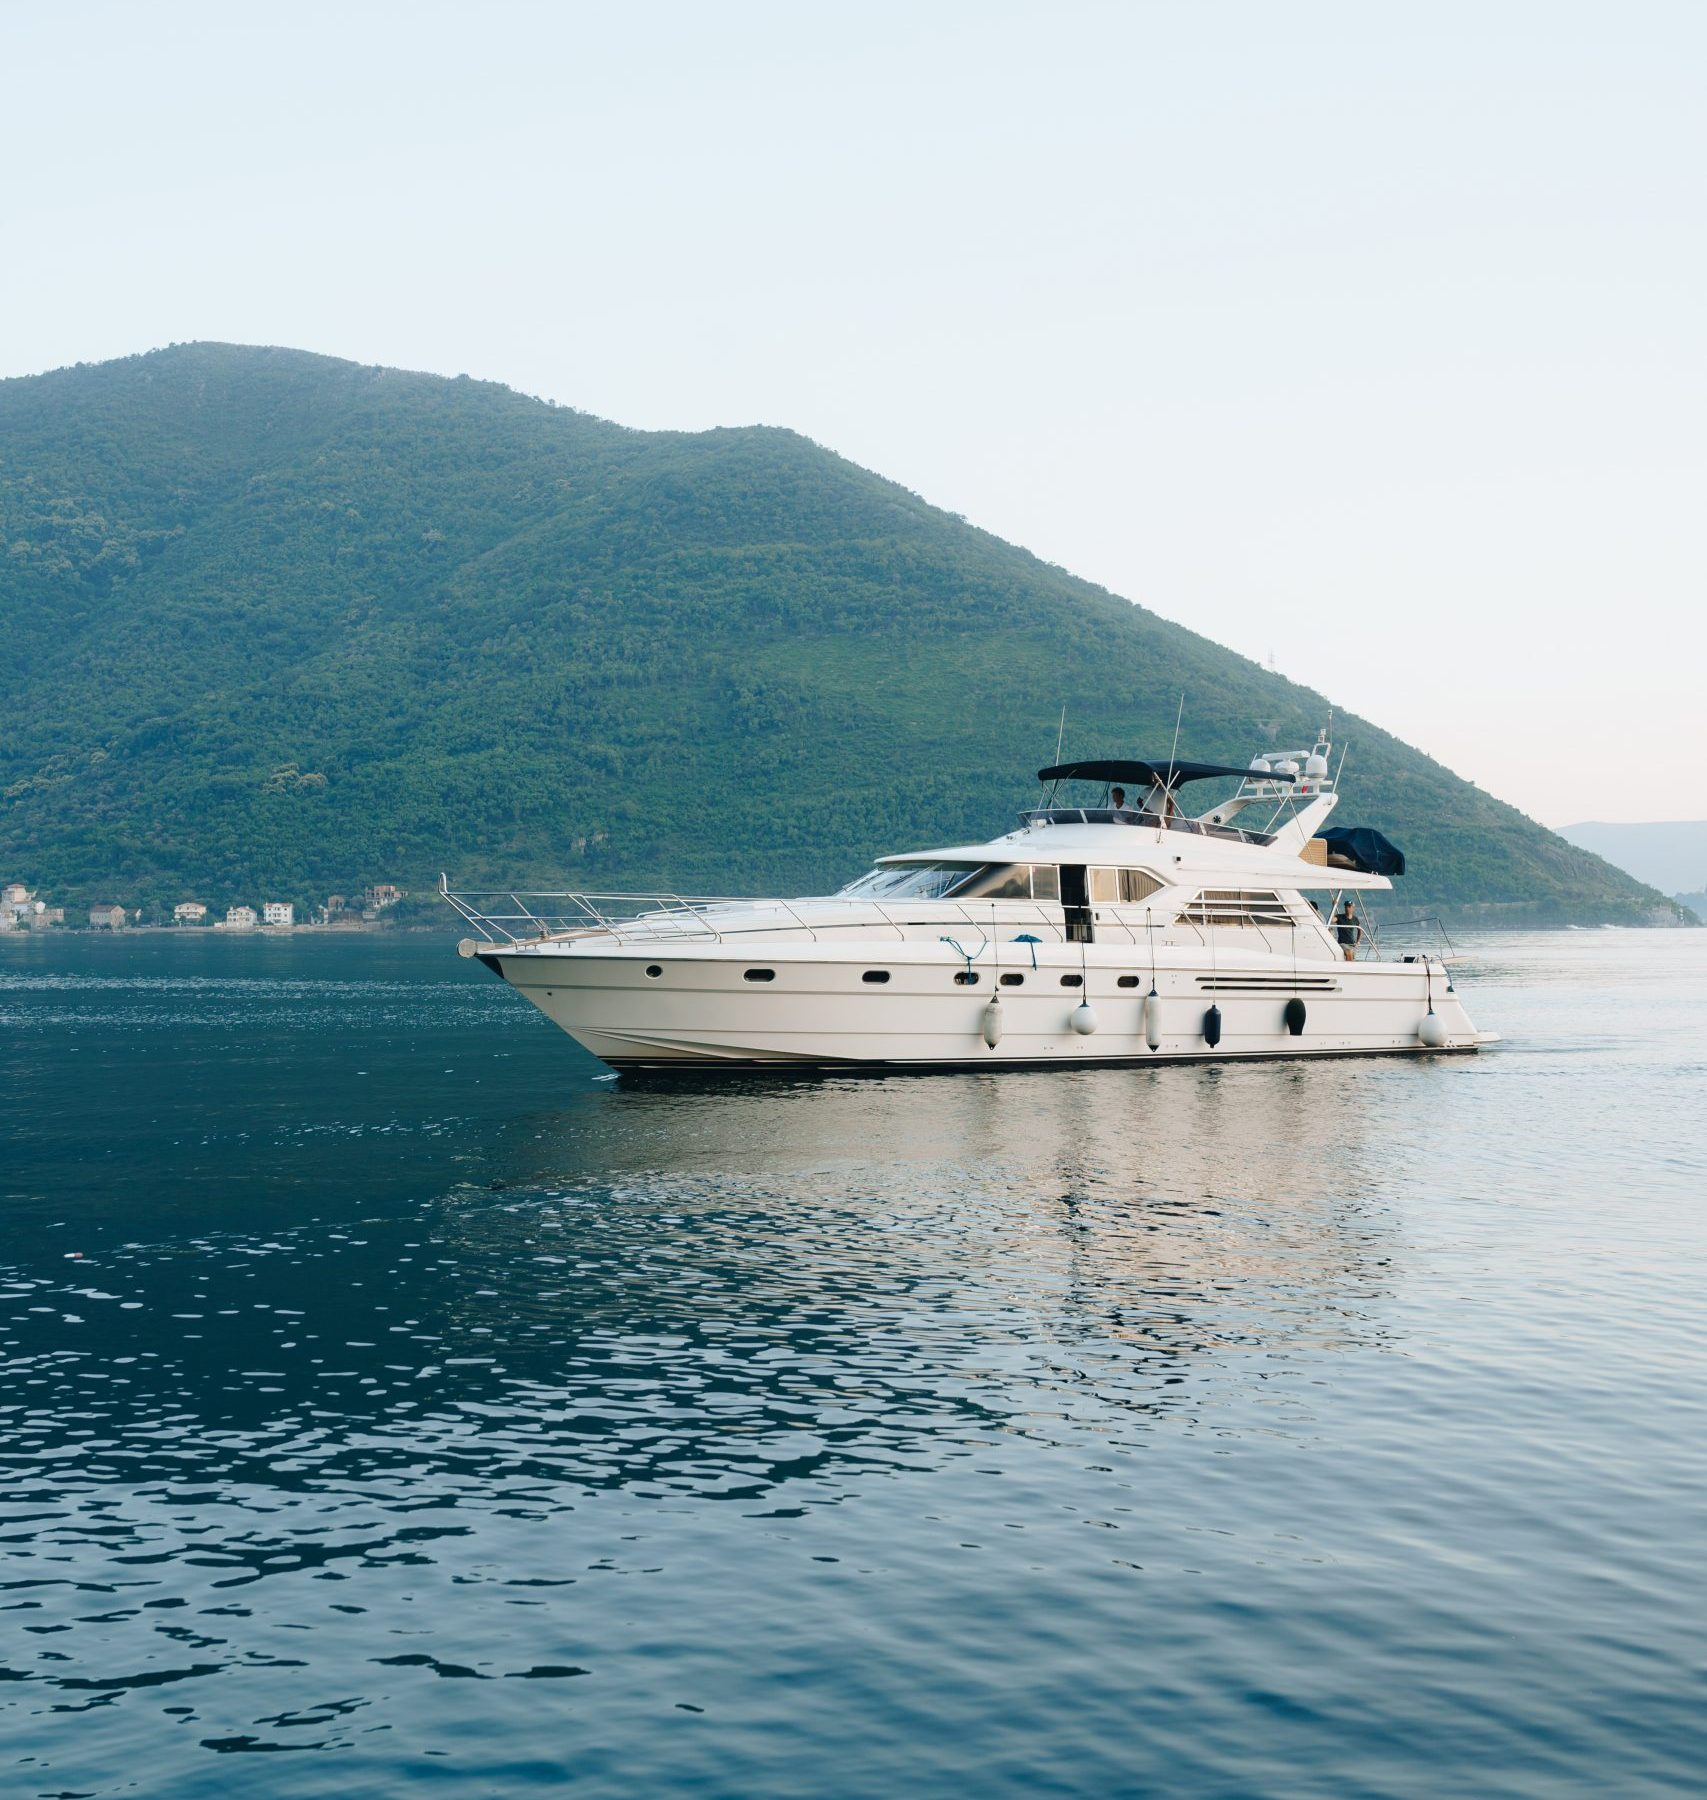 White cruise yacht on the water near the mountains in Montenegro. High quality photo